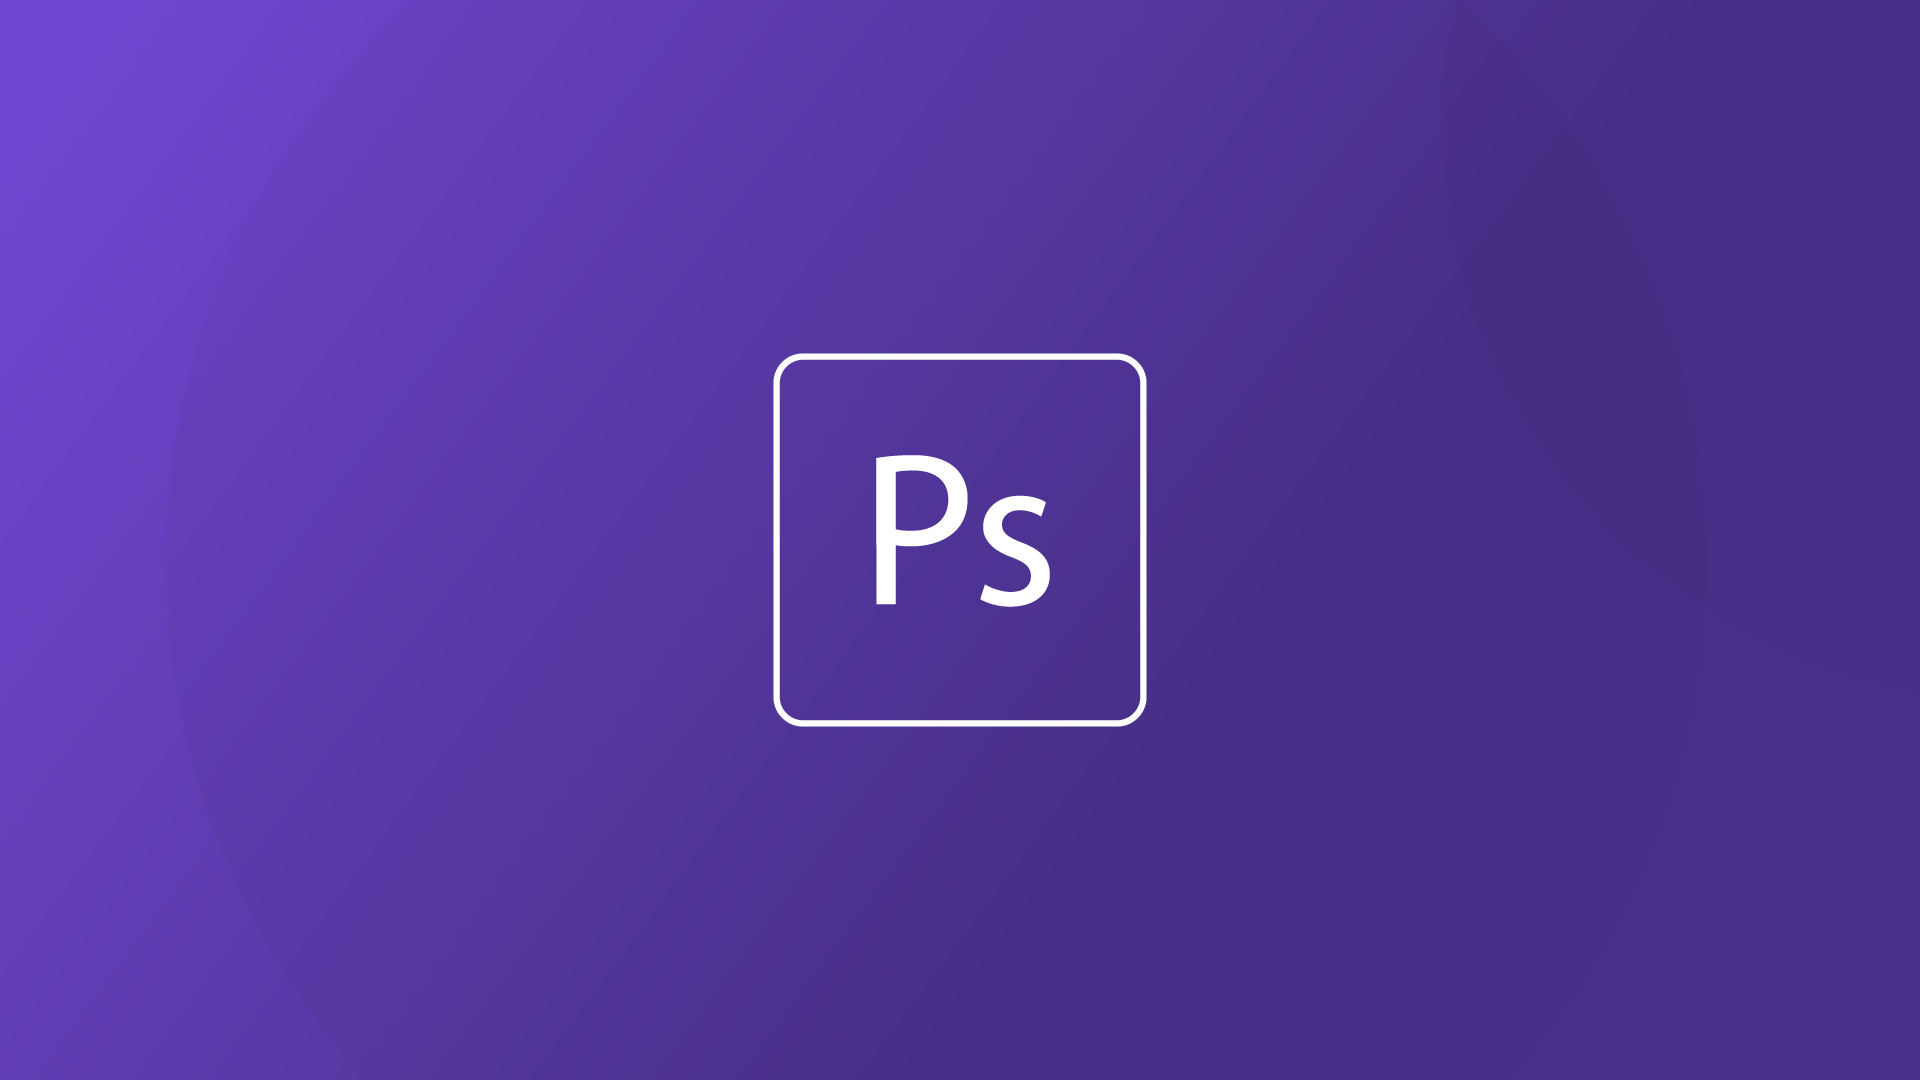 Photoshop Creative Cloud 2014 - What's New? Training